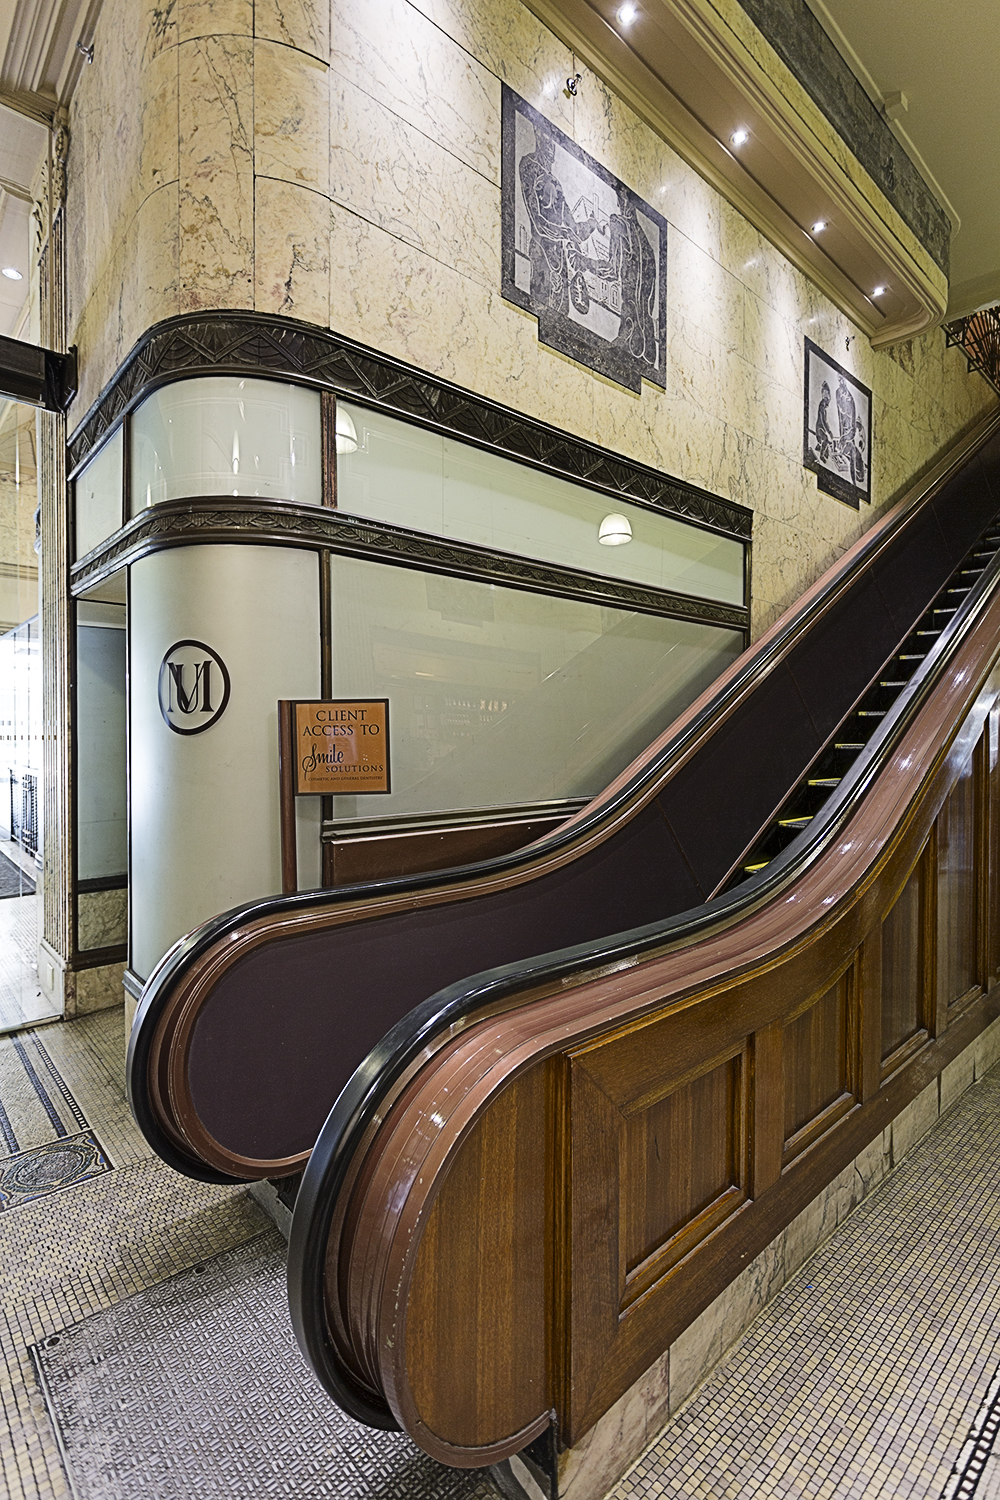 The escalator on the ground floor of the Manchester Unity building